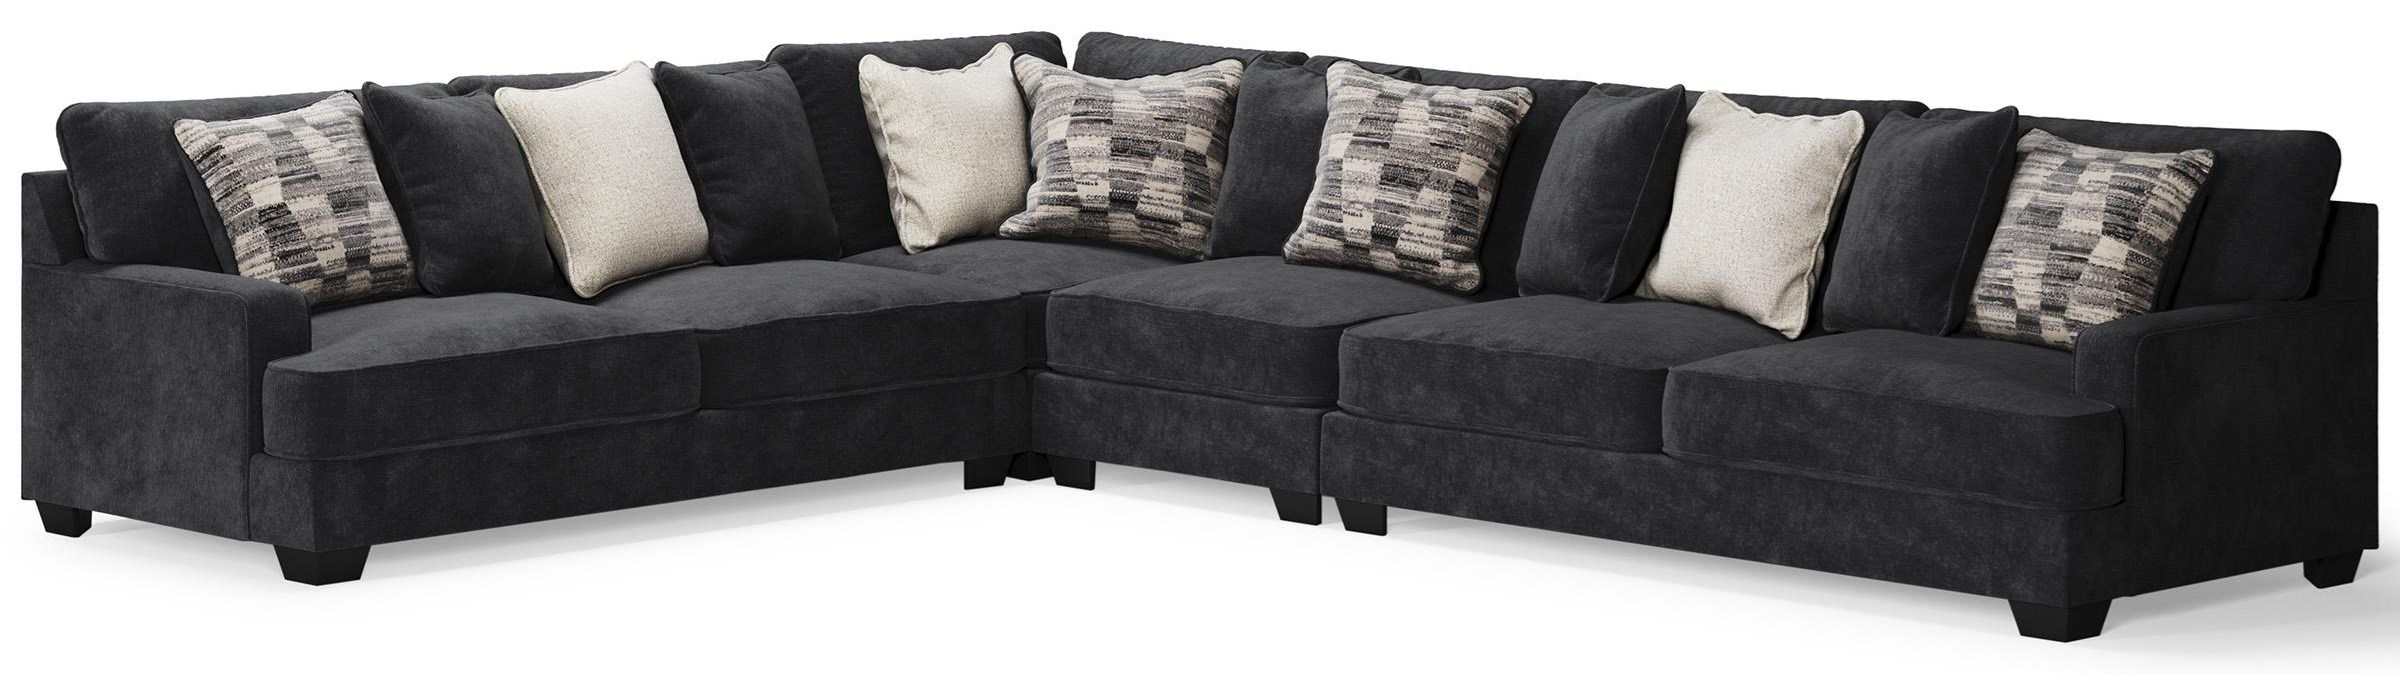 47501 Sectional at Sadler's Home Furnishings